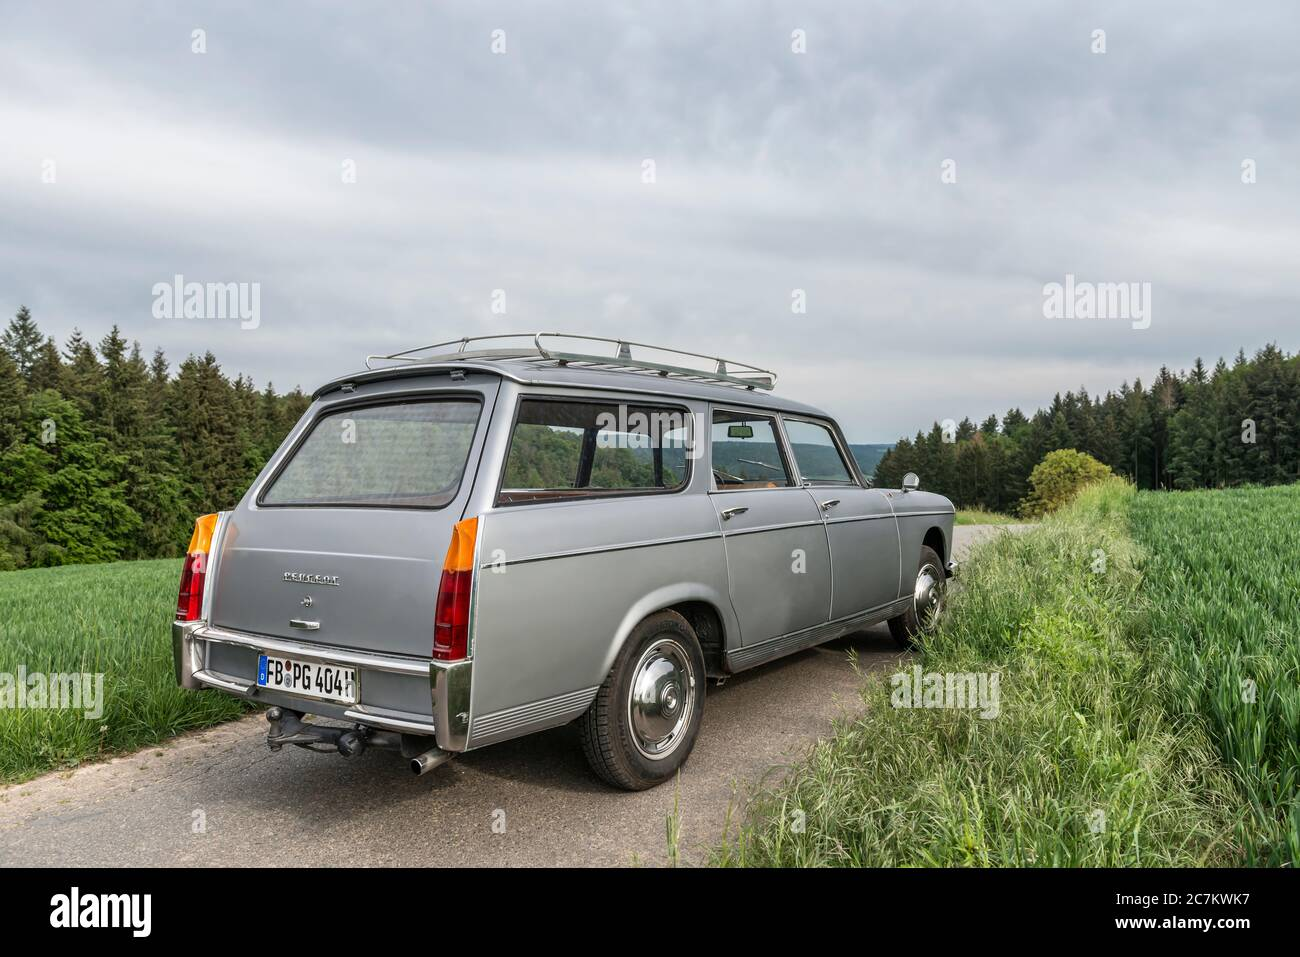 Breuberg, Hessen, Germany. Peugeot 404 station wagon, year of construction 1964, PS 80, displacement 1998, body designed by Pininfarina Stock Photo